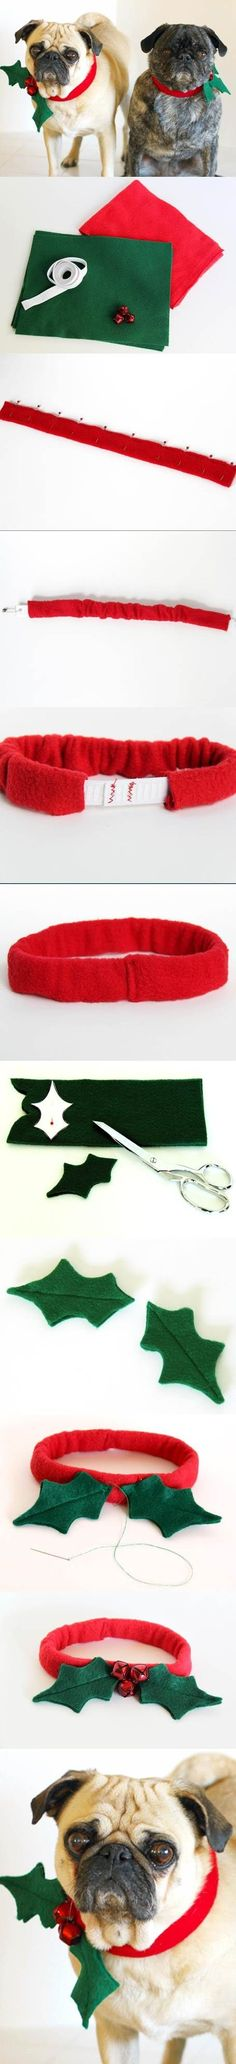 DIY Christmas Dog Collar | LovePetsDIY.com